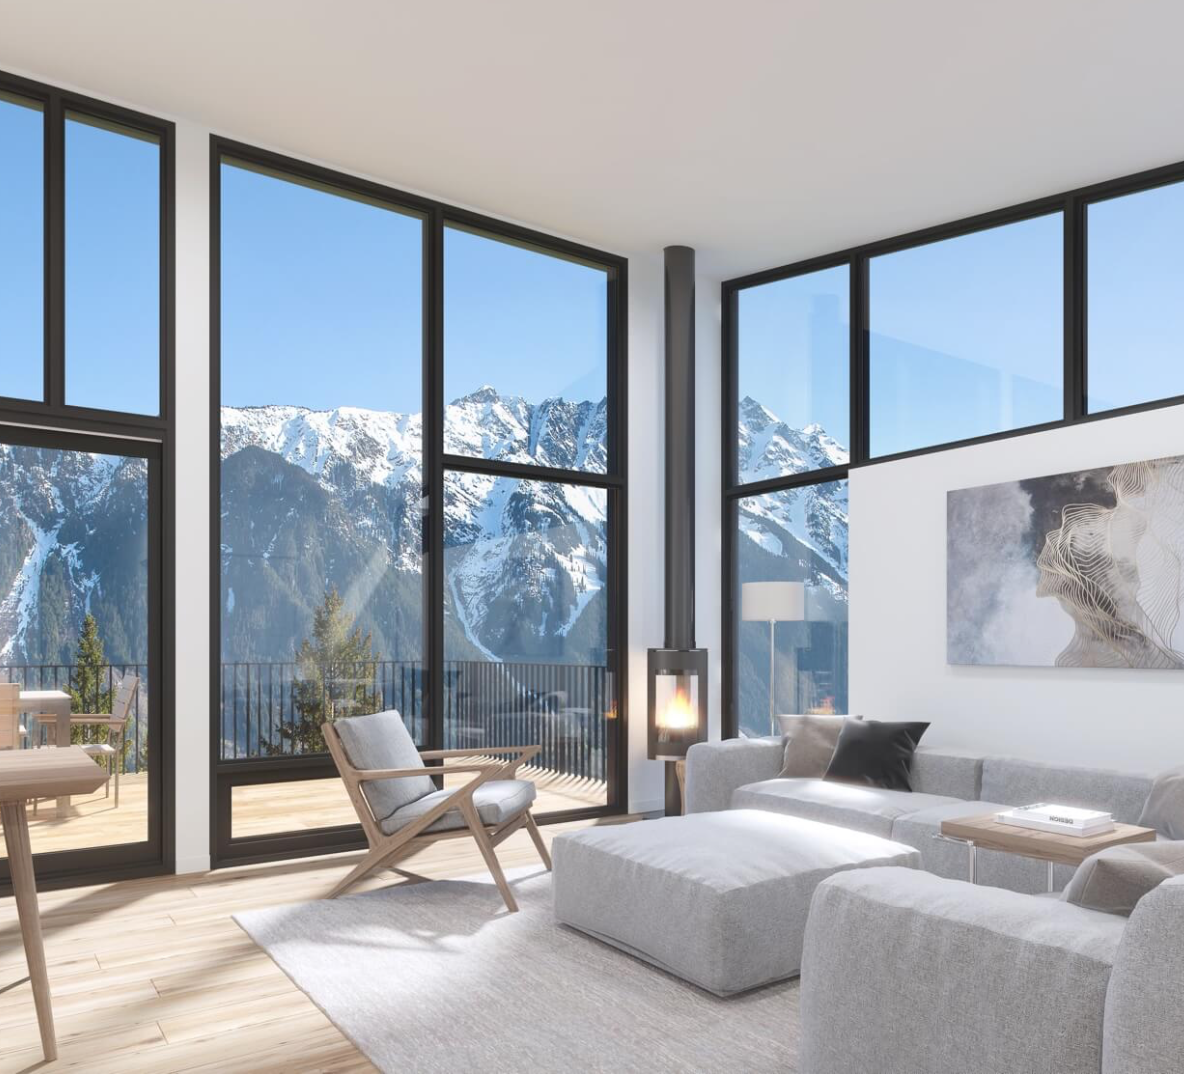 Elevate-at-sunstone-new-home-interior-Pemberton-